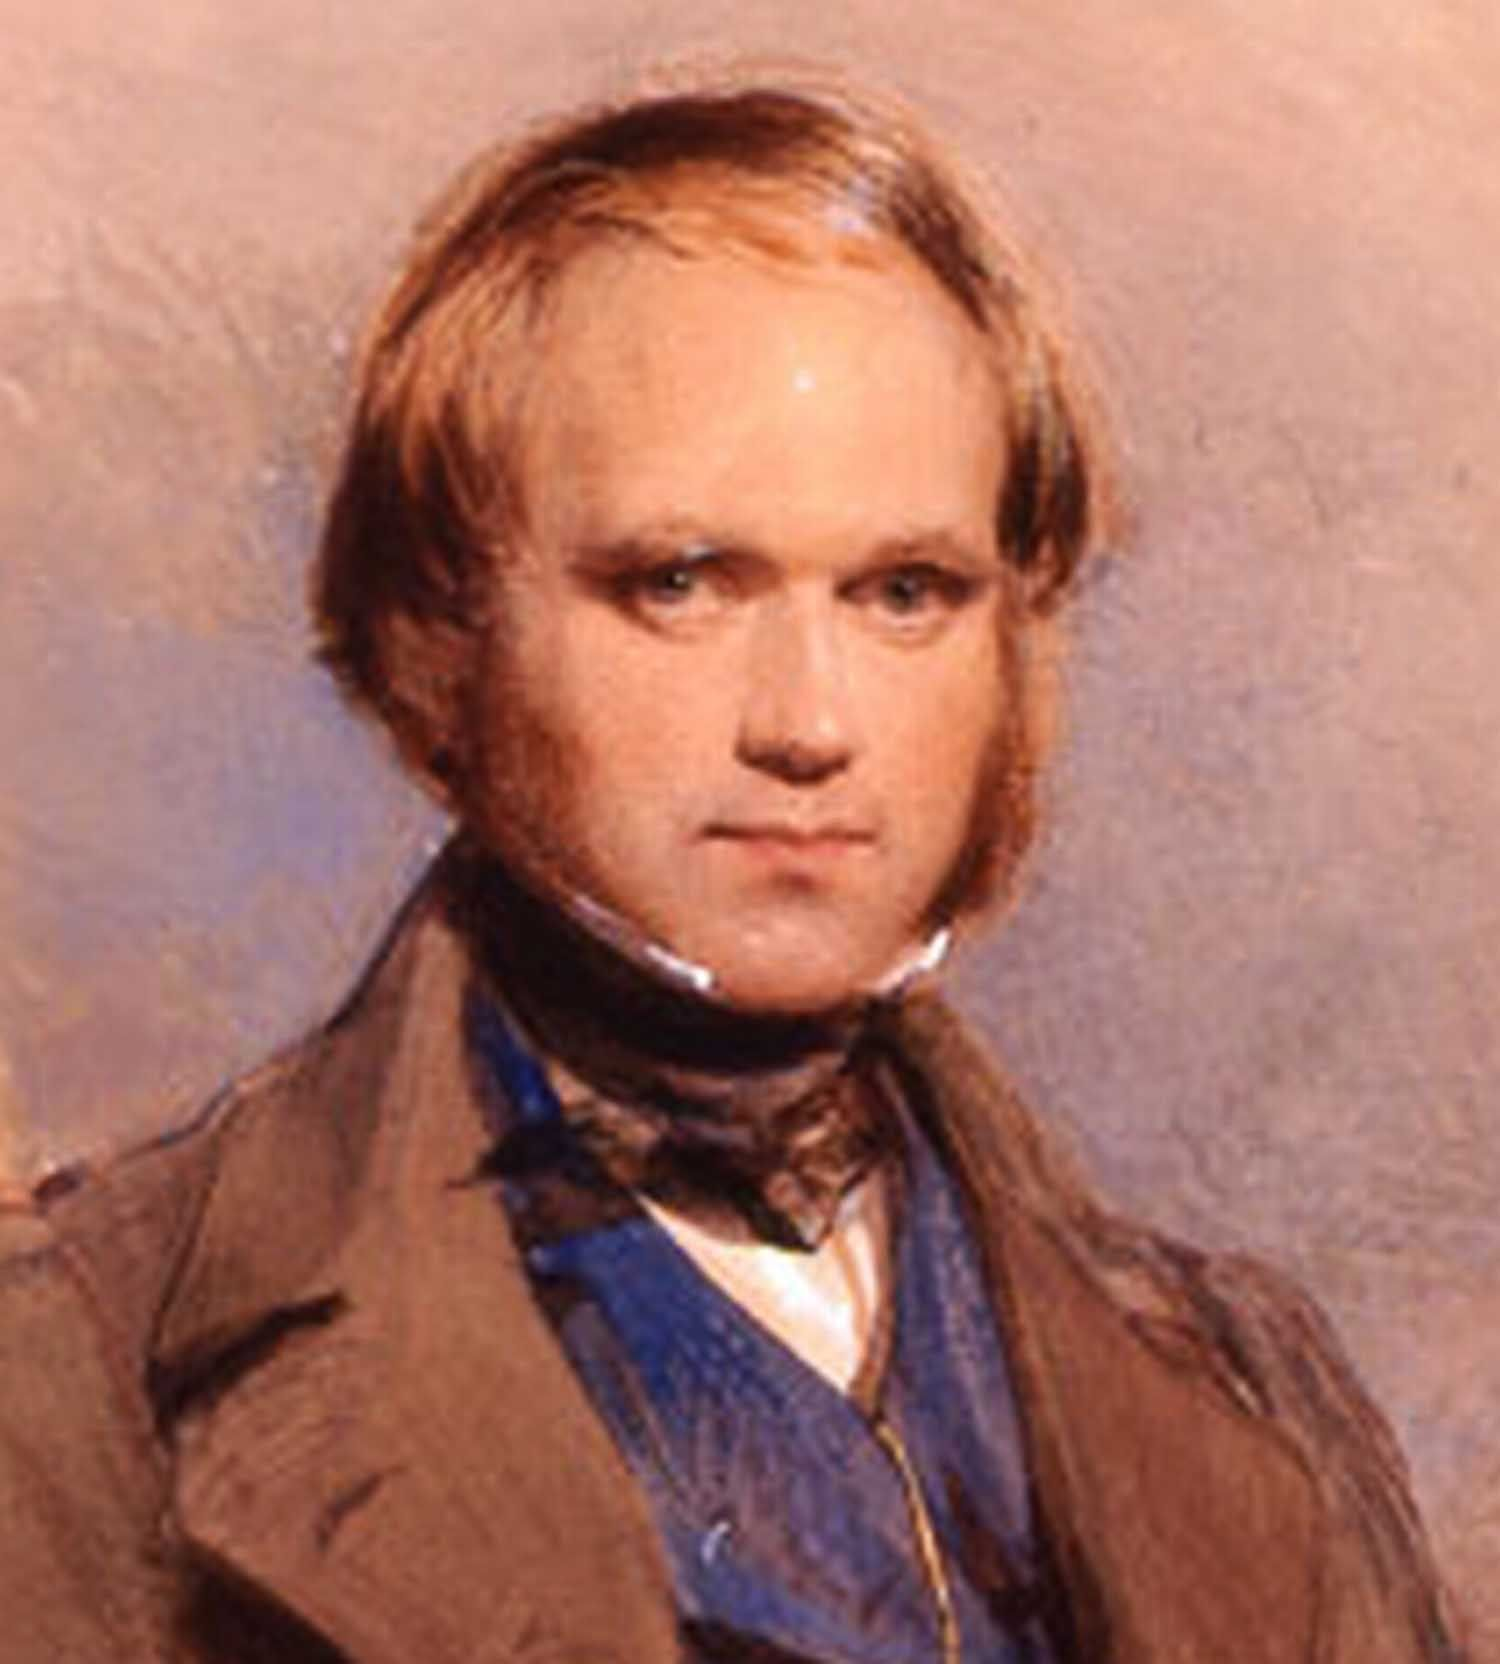 Charles Robert Darwin (February 12, 1809 - April 19, 1882)  English naturalist.  He established that all species of life have descended over time from common ancestry, and proposed the scientific theory that this branching pattern of evolution resulted from a process that he called natural selection.